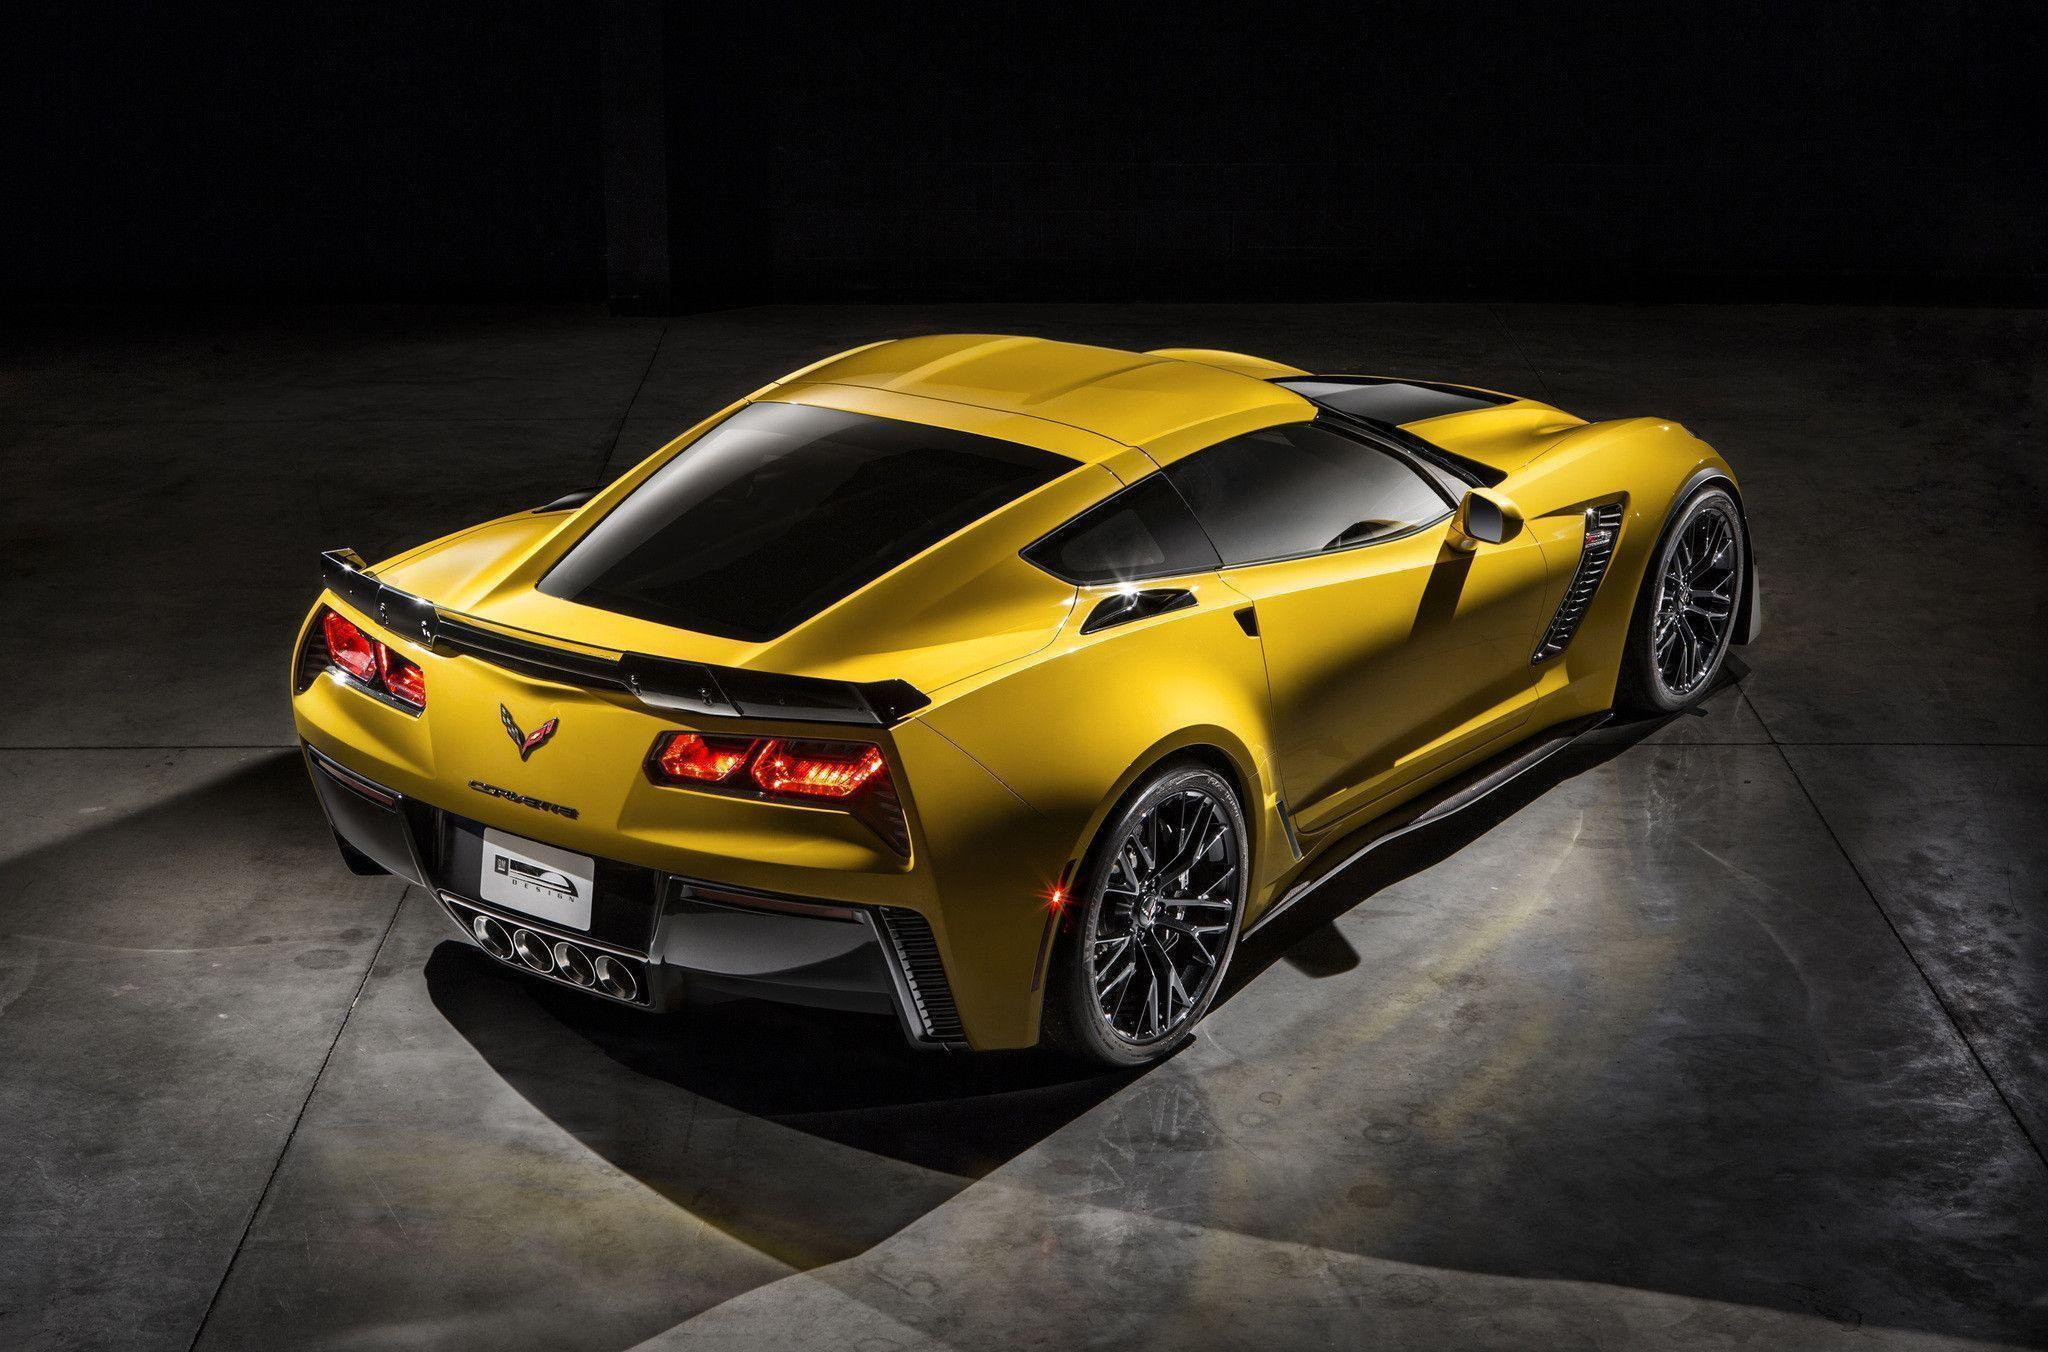 2015 z06 wallpaper - photo #17